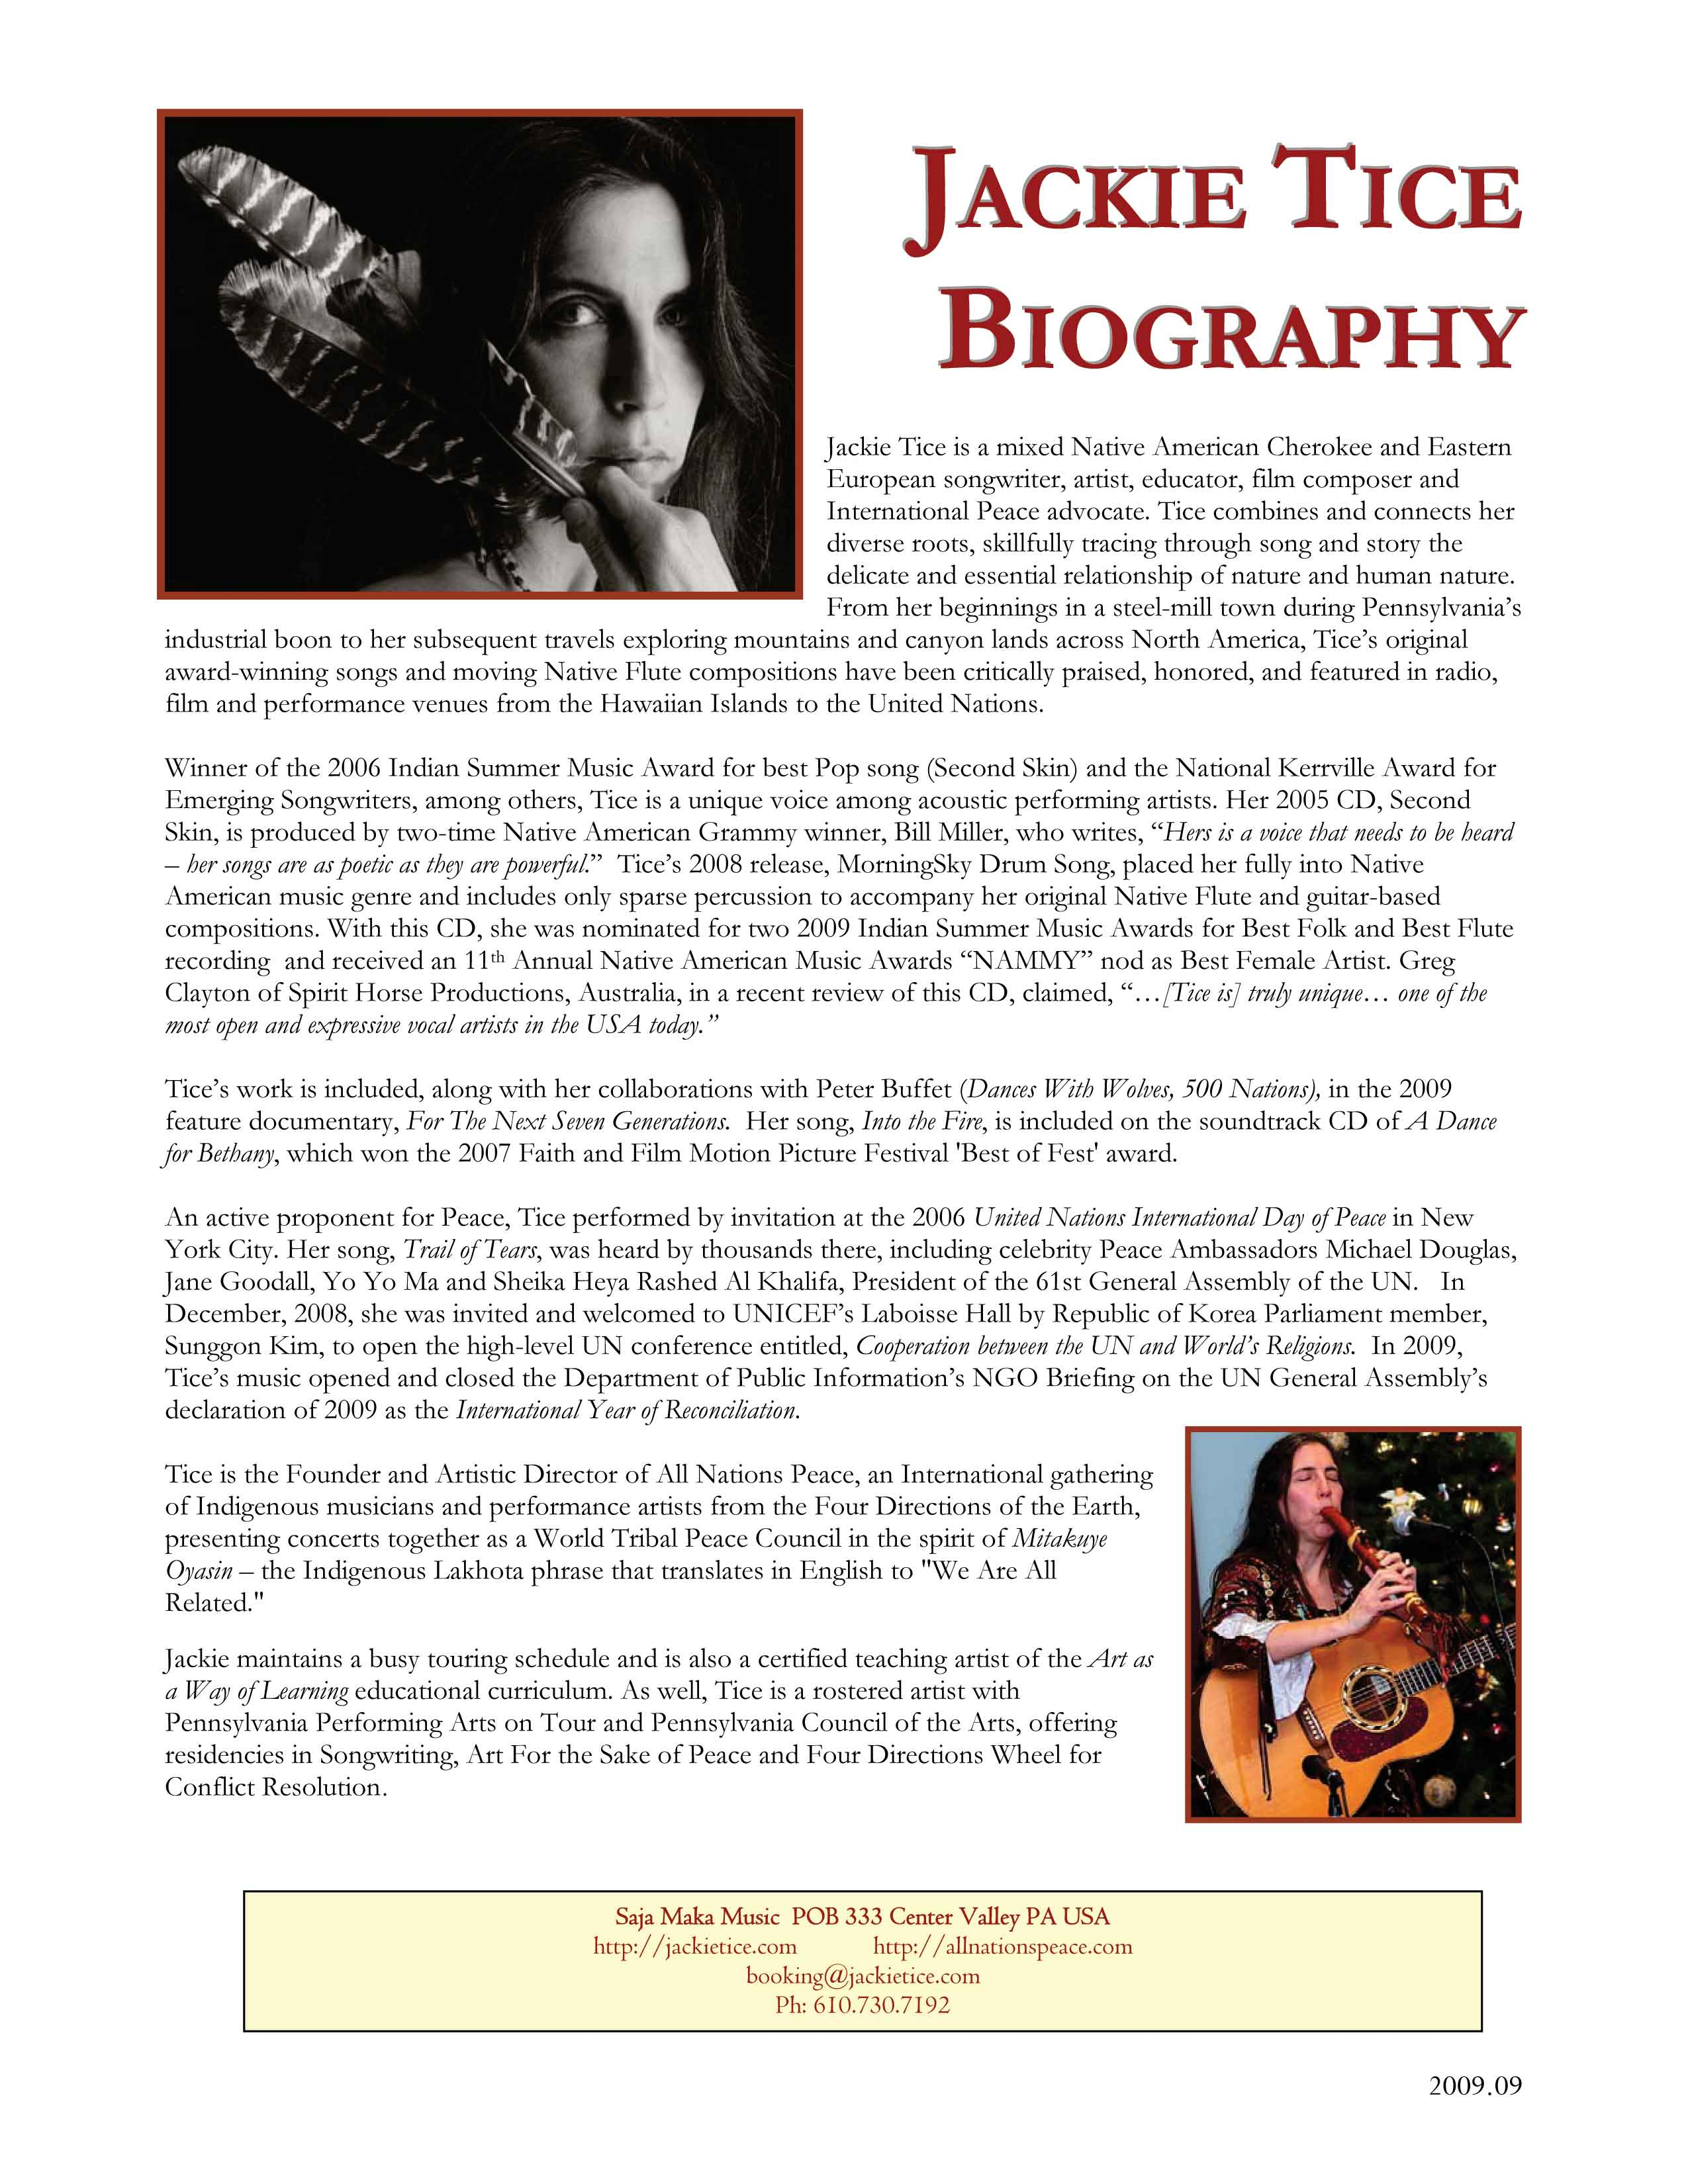 Jackie Tice - singer / songwriter - Anatomy of a Songwriter